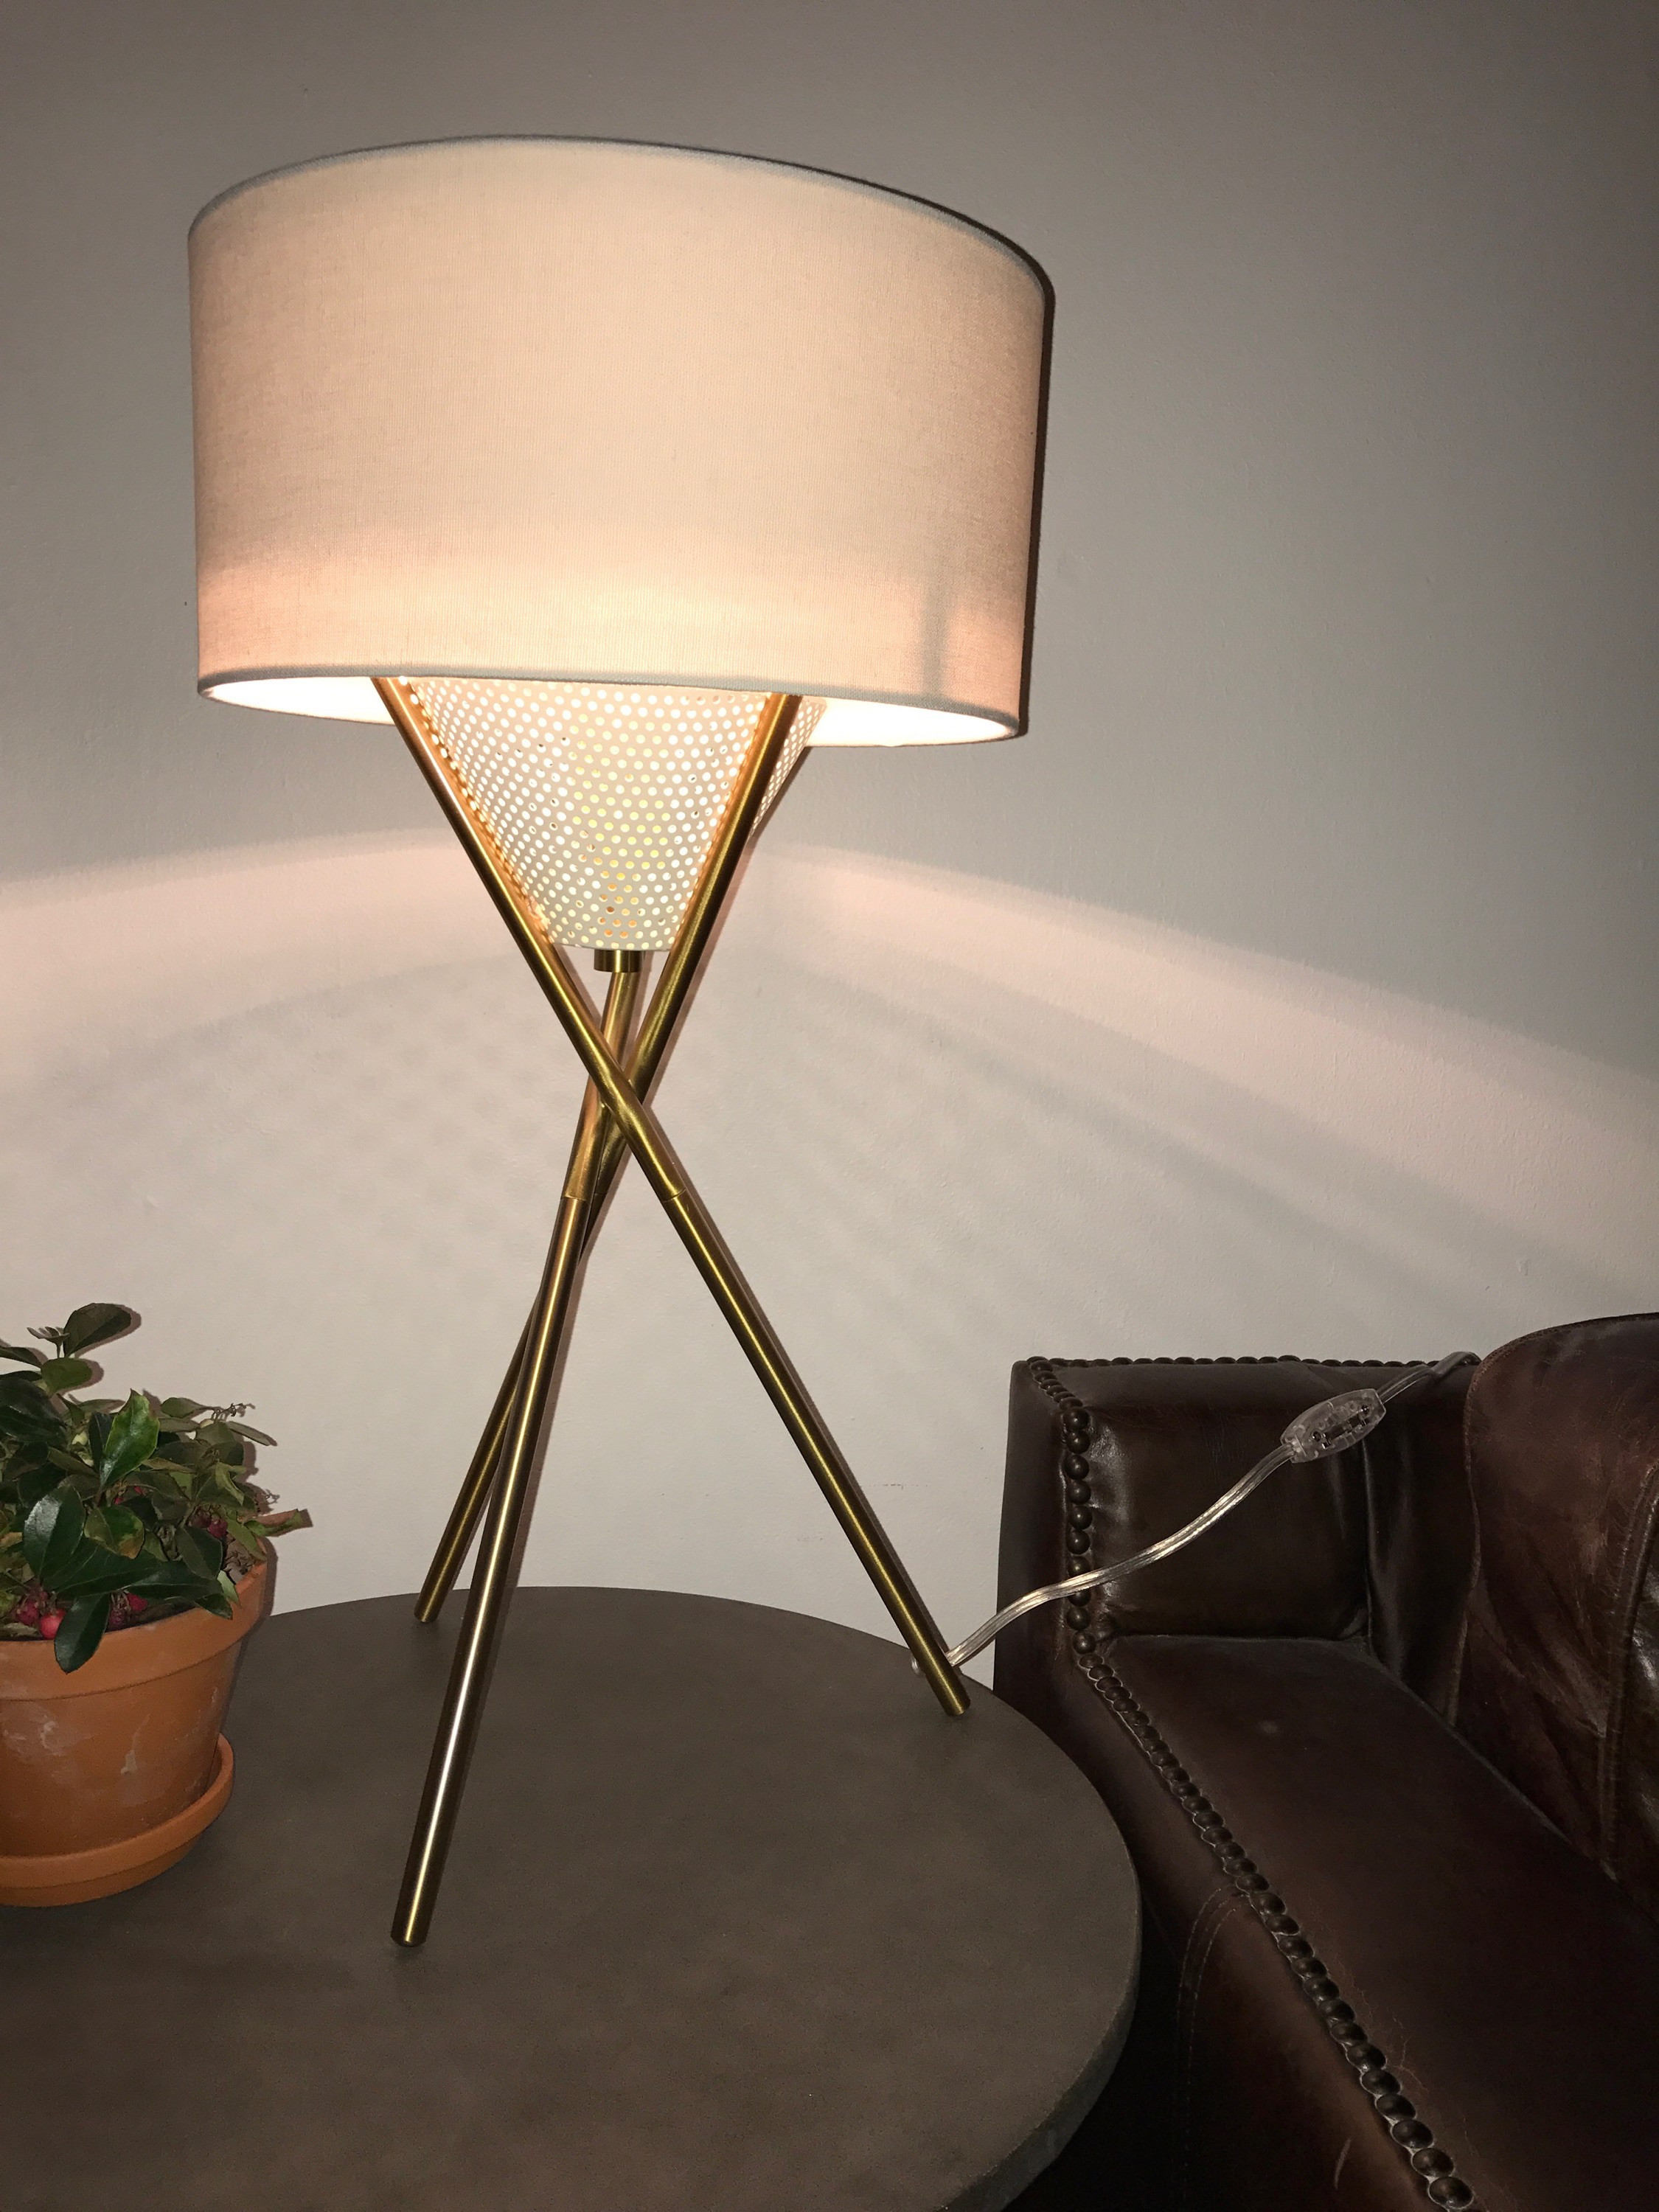 West Elm Mid-Century Tripod Table Lamp in Antique Brass